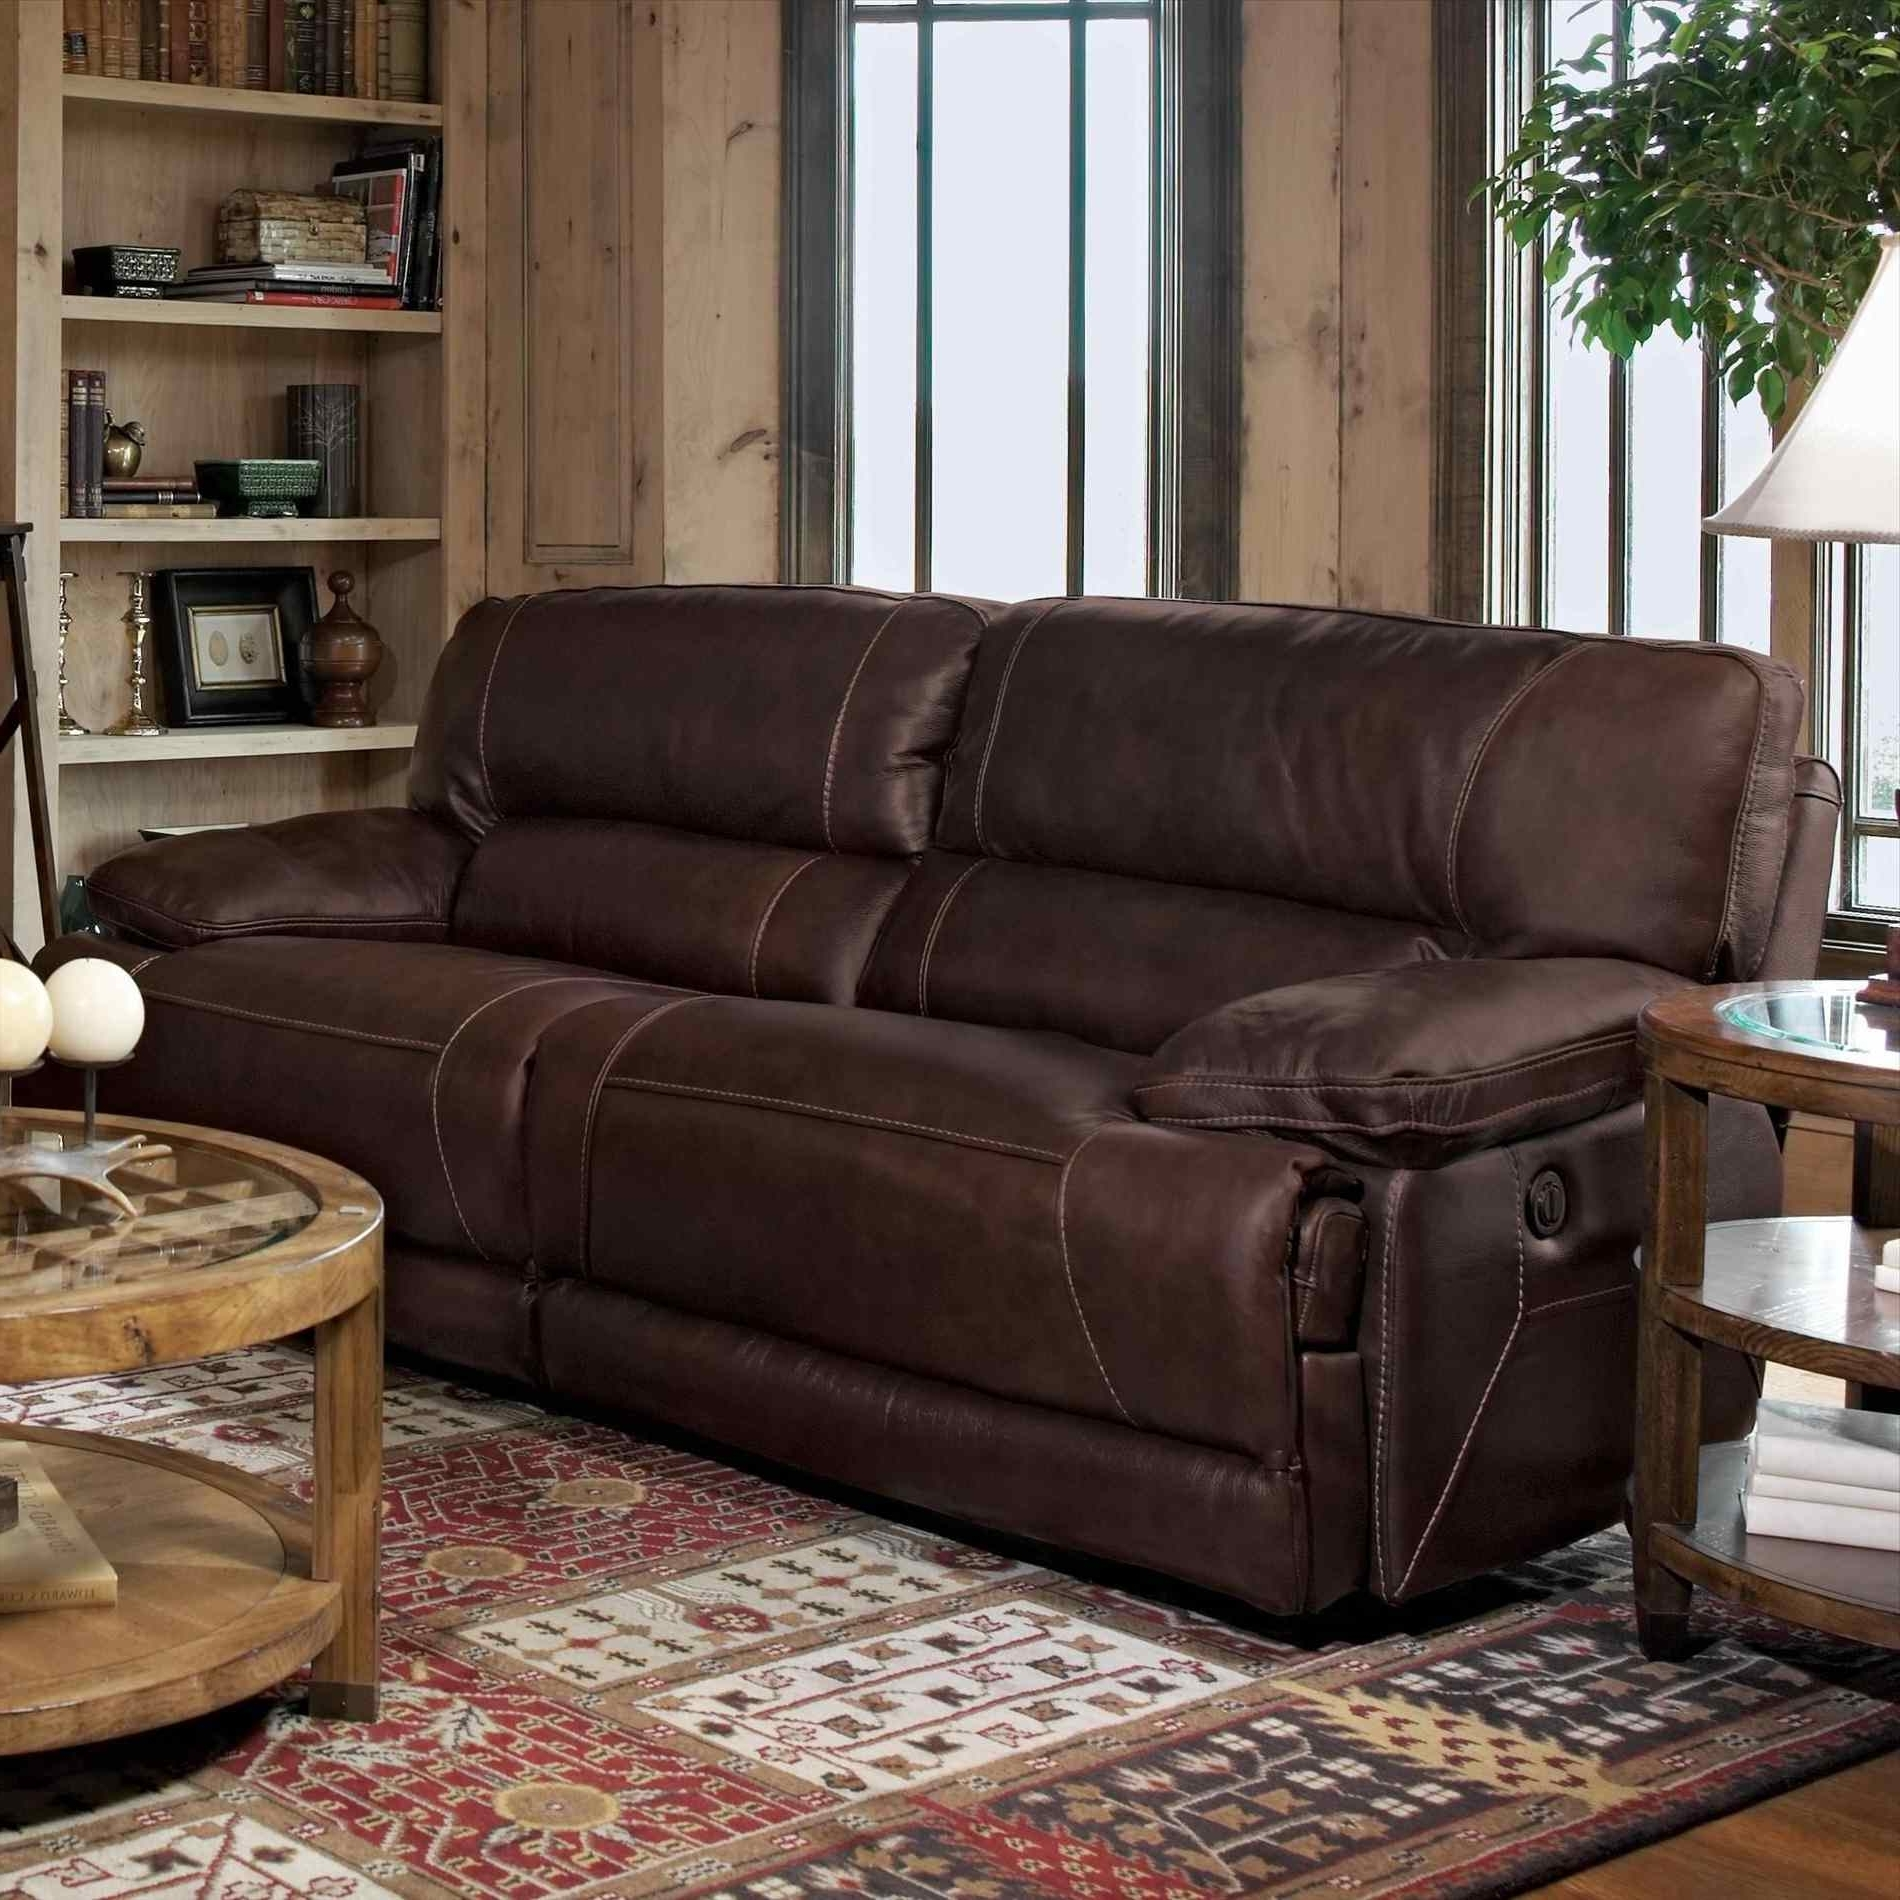 2017 Sectional Sofas At Sam's Club Within Sofa : Reclining White Sam S Club Review Centerfieldbarcom Sam (View 9 of 15)